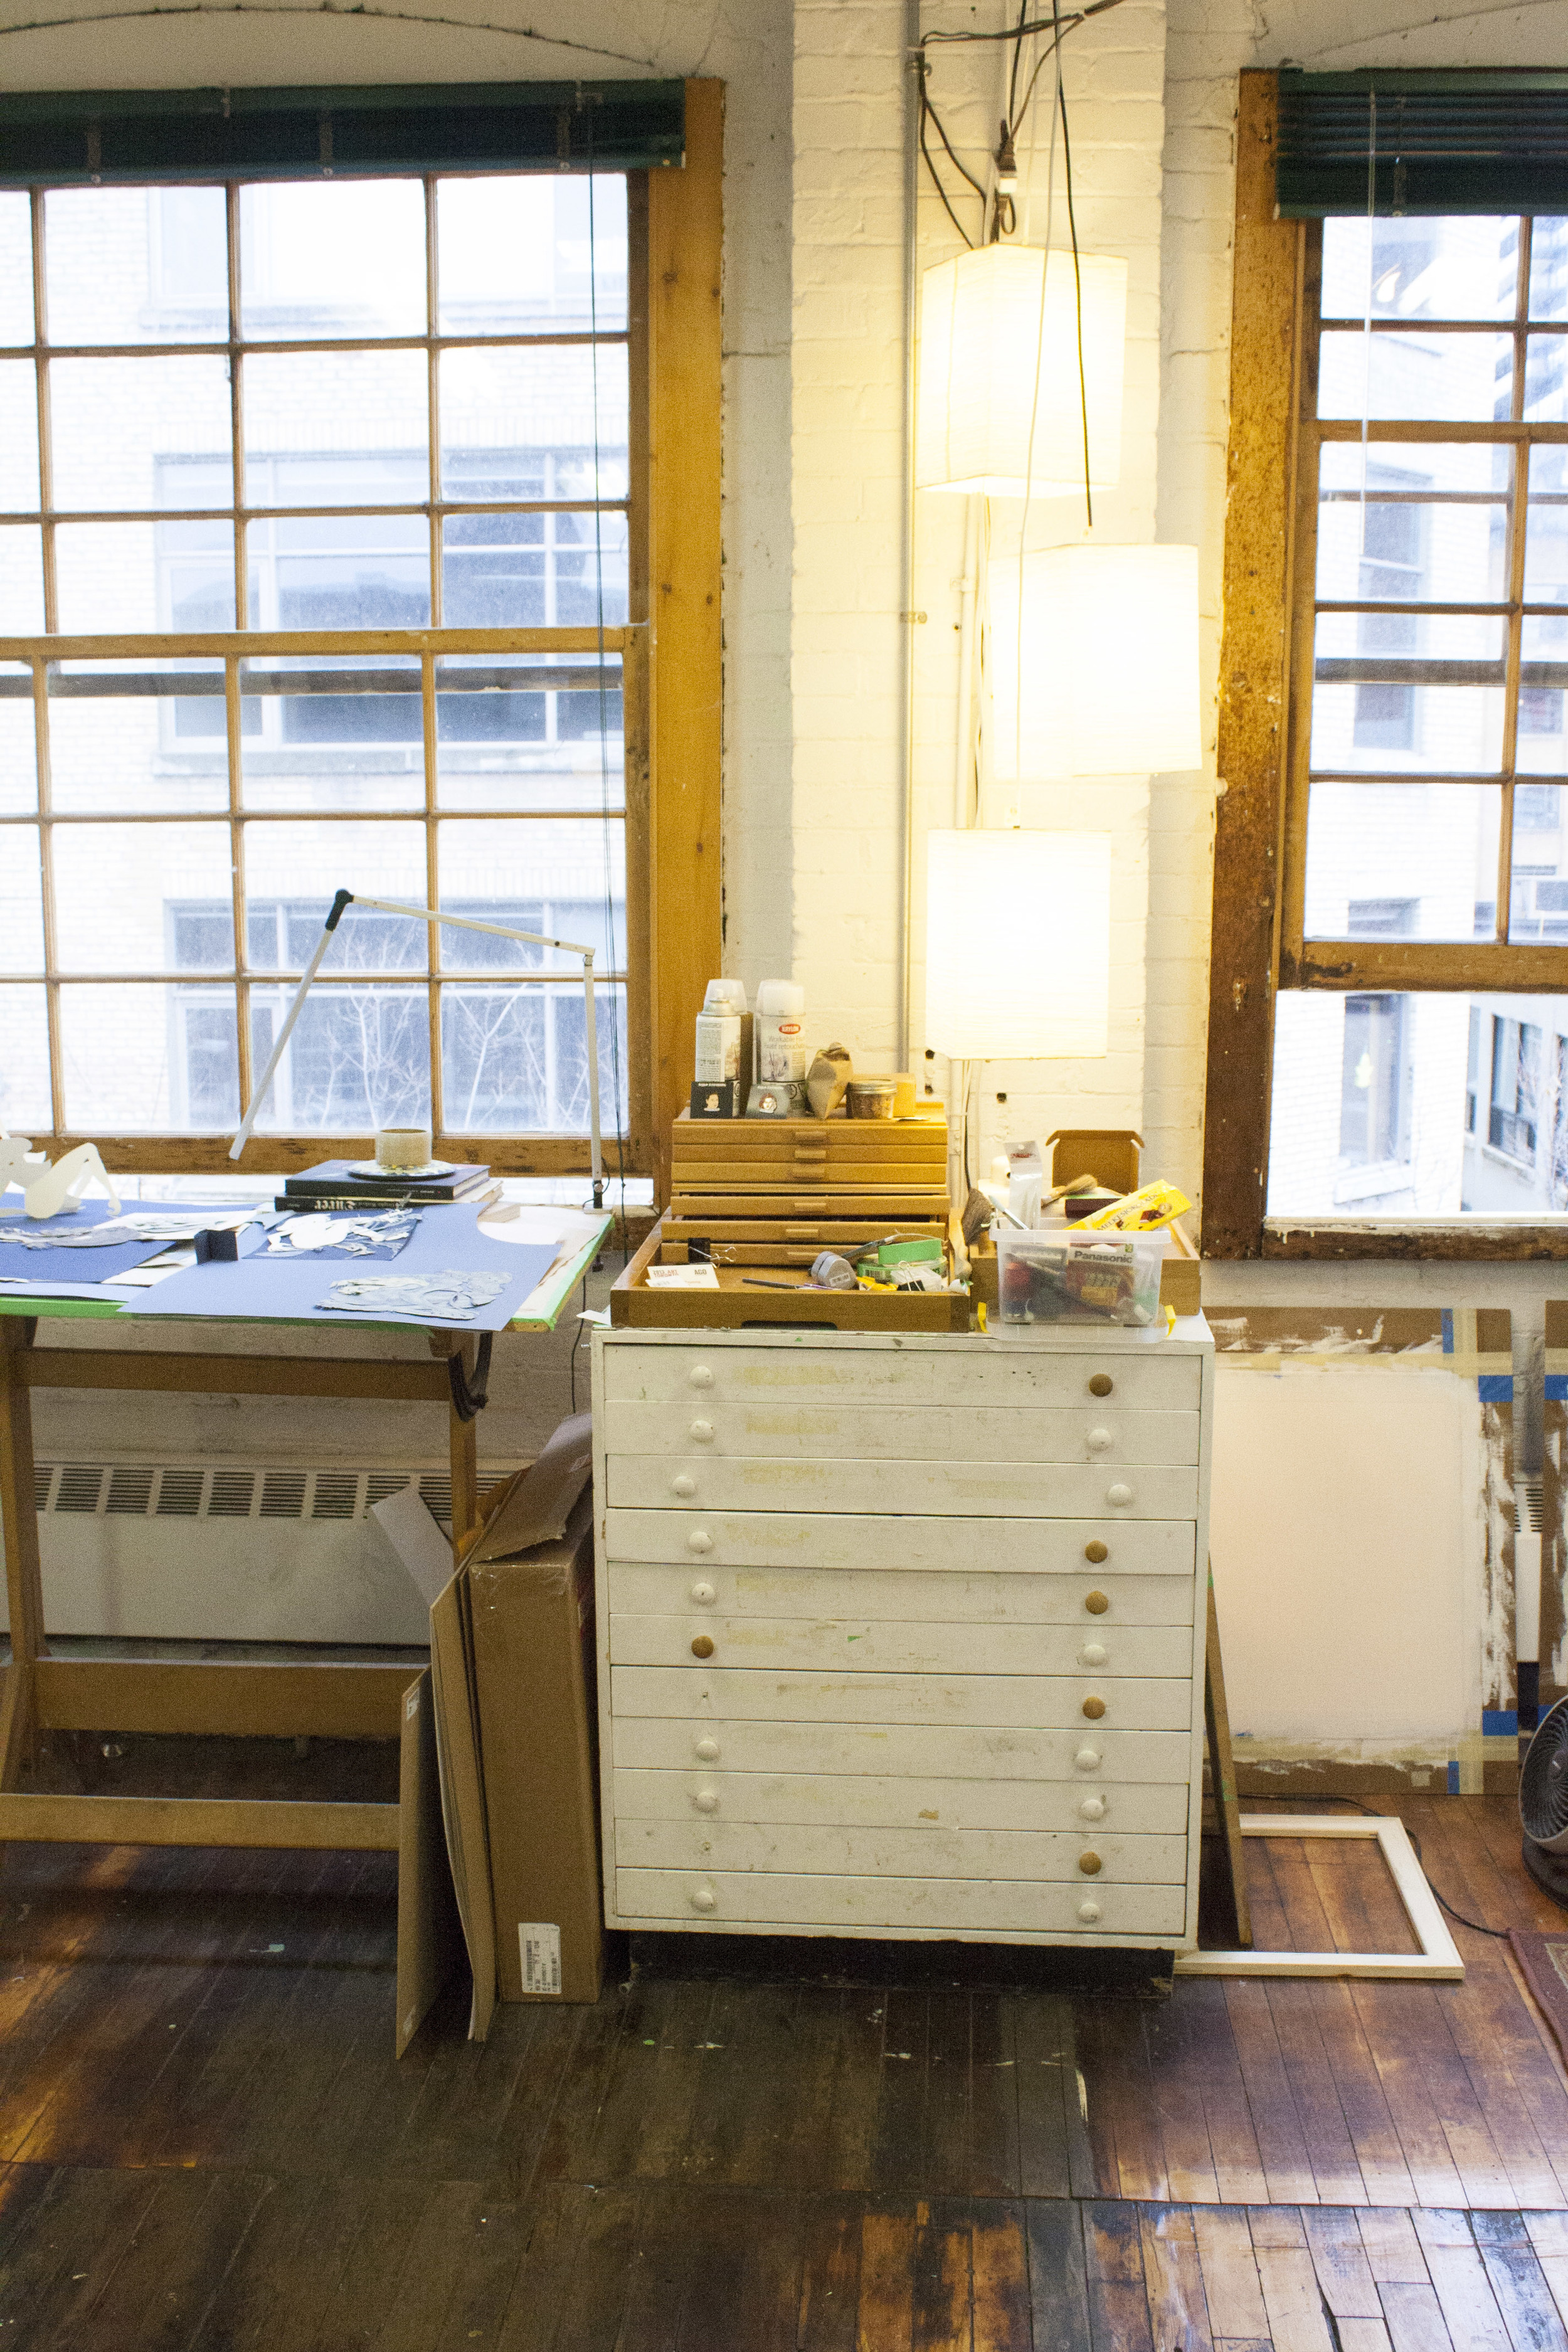 This flat file cabinet marks the dividing line between Winnie and her studio mate Kris Knight's work space.